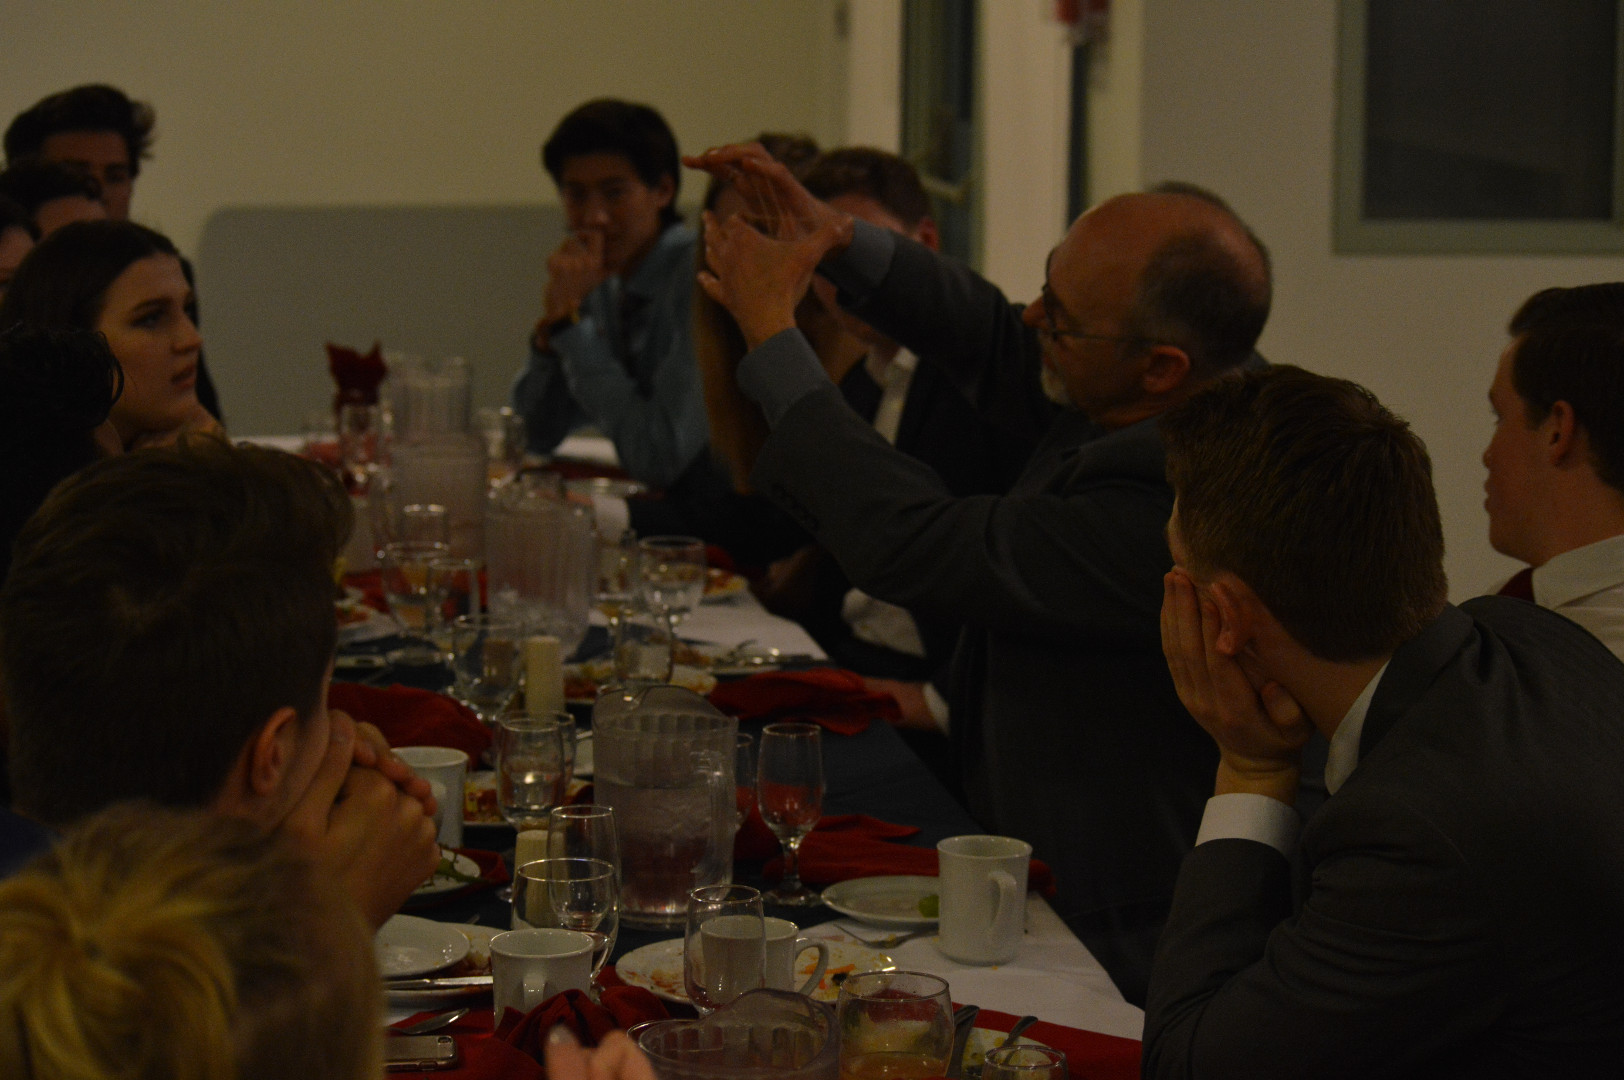 DSC_0138 - at High Table.JPG